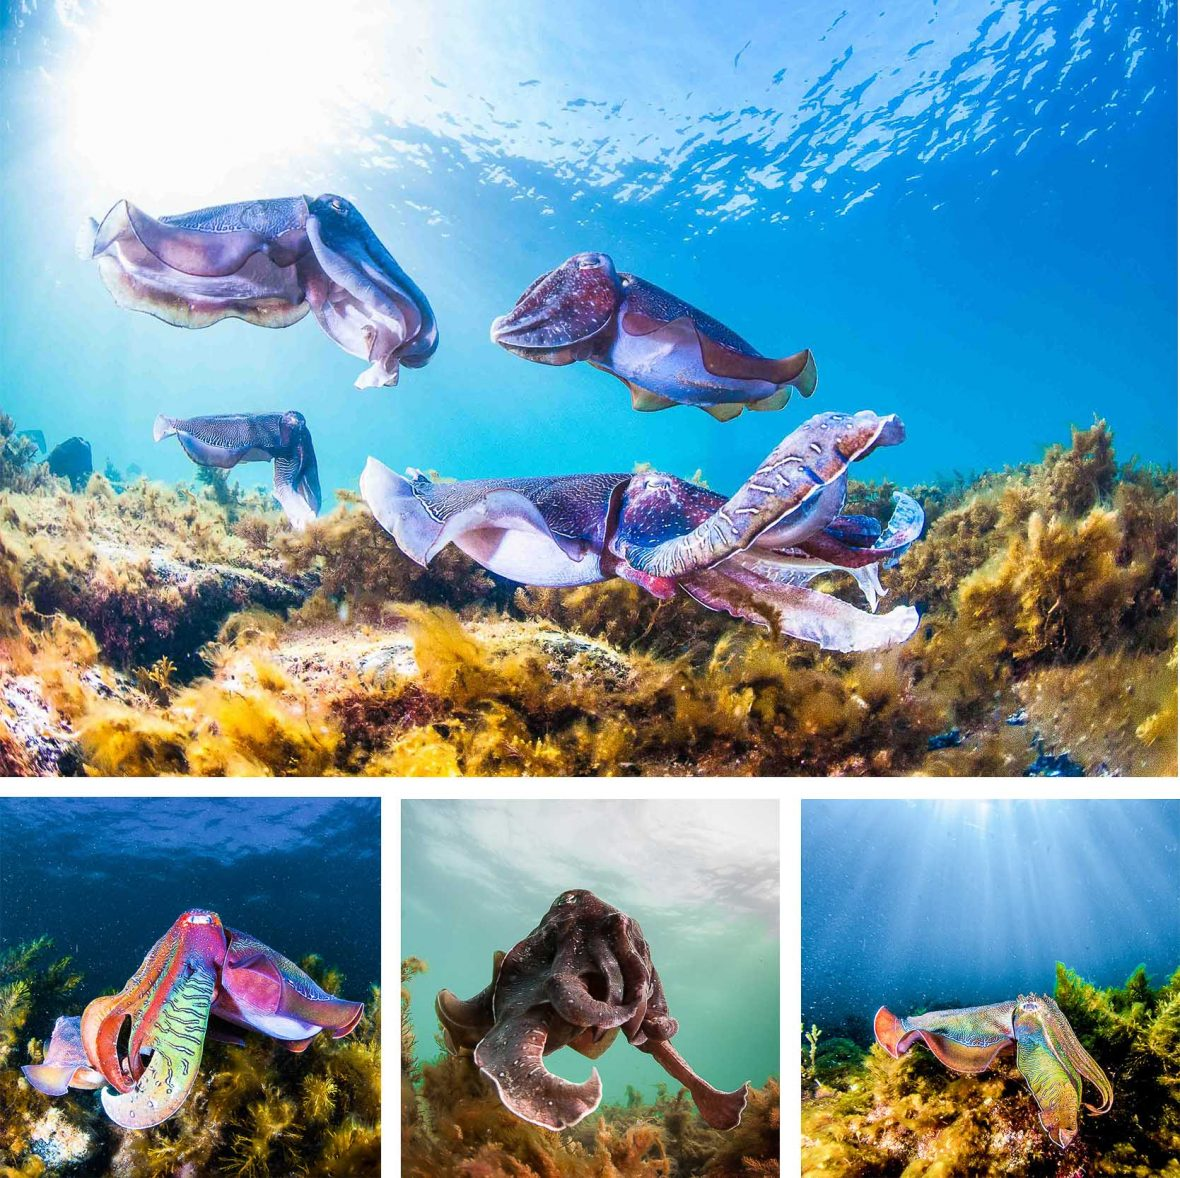 Cuttlefish in a range of dazzling colors congregate to spawn in their thousands at Upper Spencer Gulf Marine Park in South Australia.